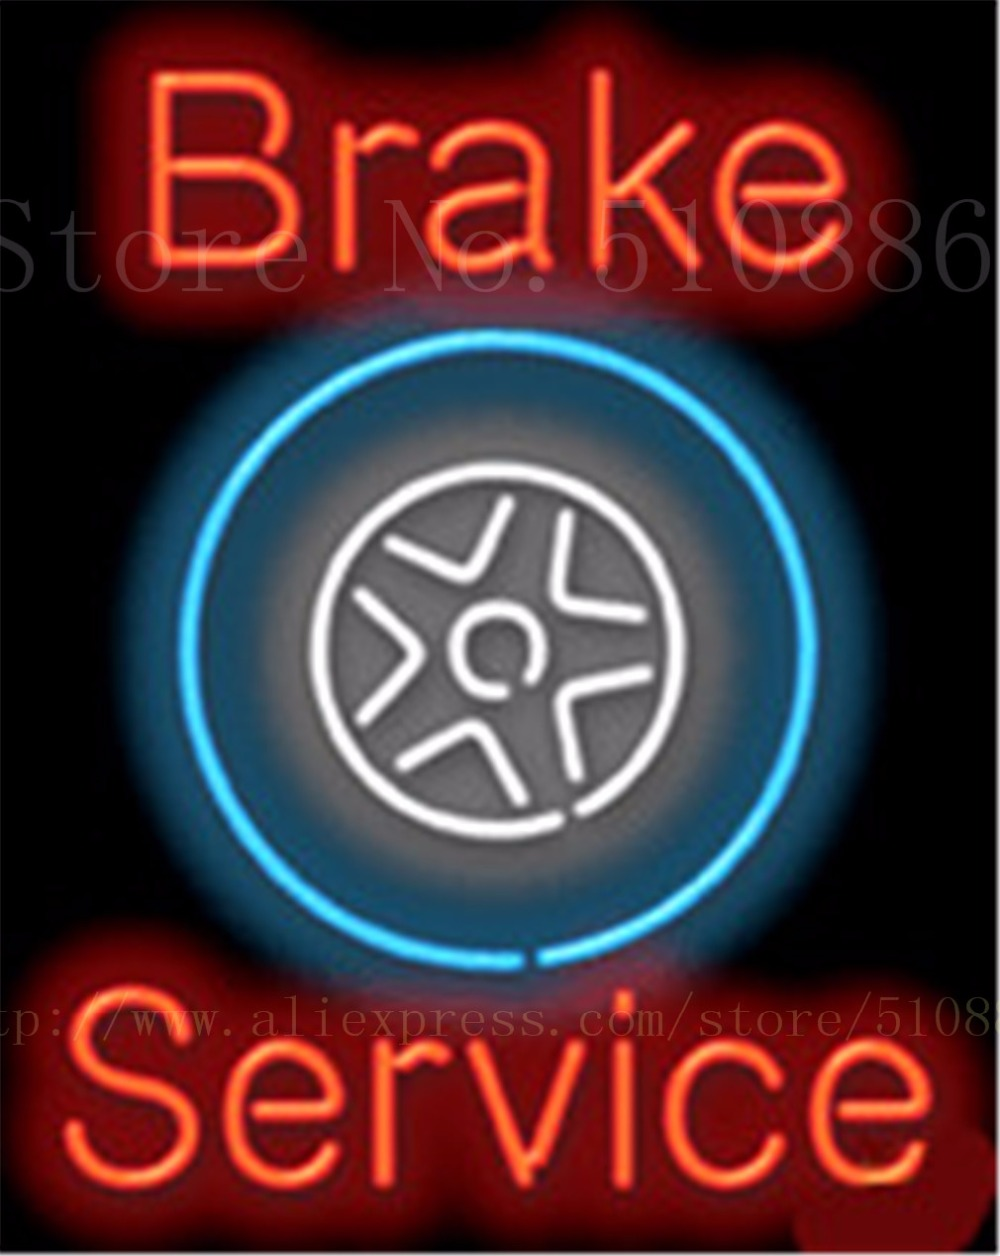 """Brake Service Auto Car Repair Tube Car neon sign <font><b>Glass</b></font> Beer Handcrafted decorative signs Store Custom Light Signboard 19\""""x15\"""""""